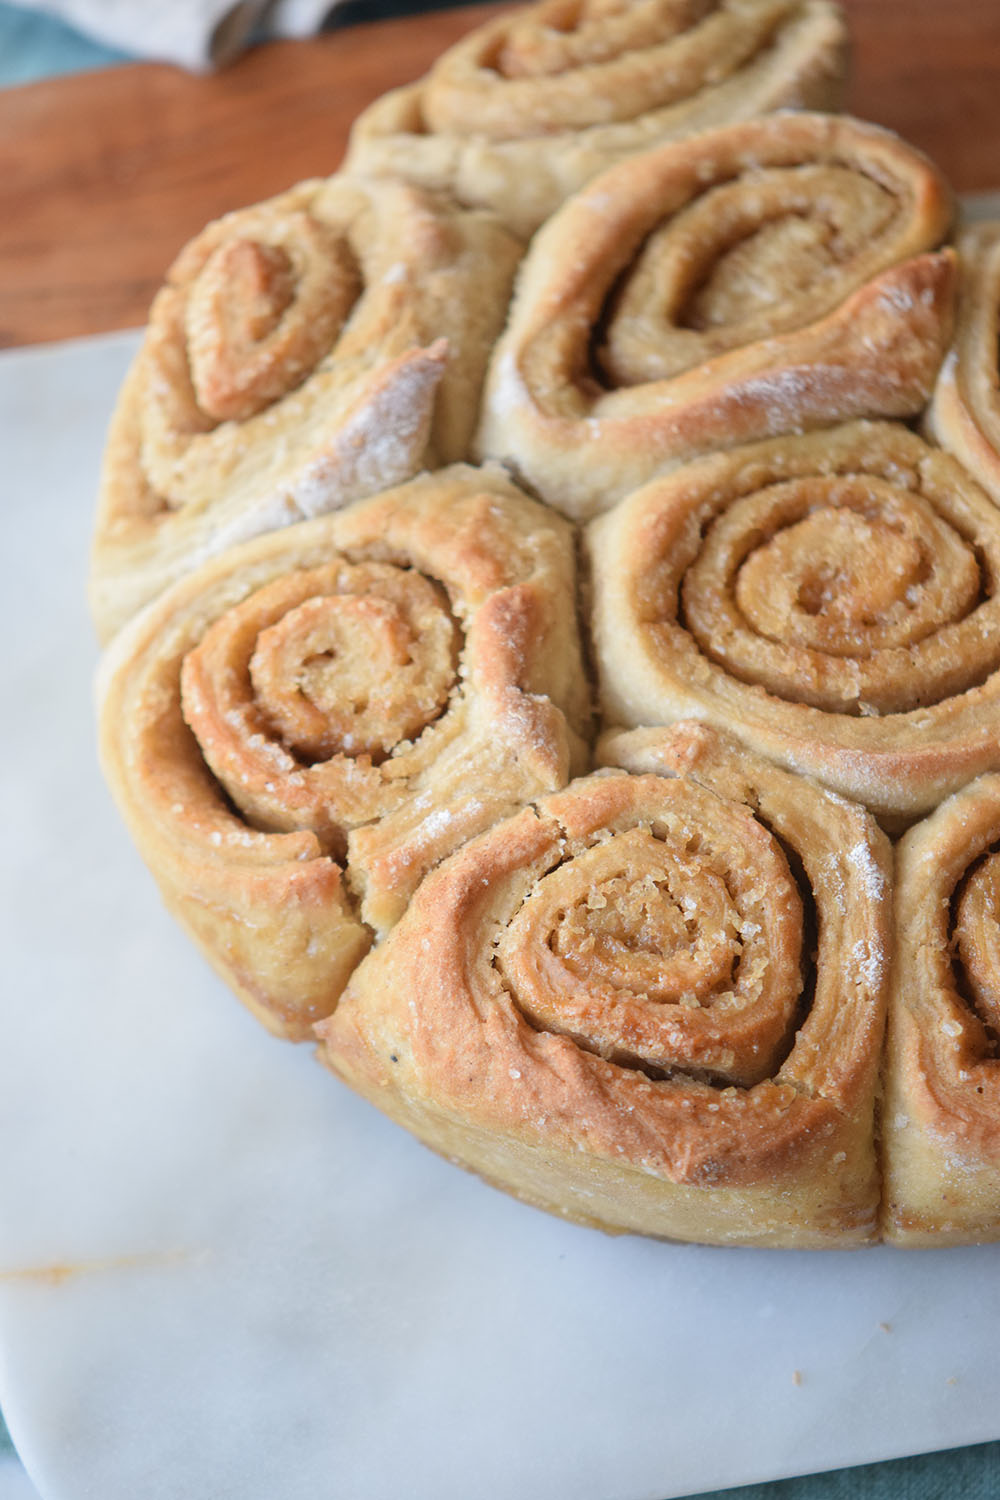 Buttermilk really makes the difference with these Buttermilk Cinnamon Rolls and the brown sugar adds a yummy caramel like flavor.